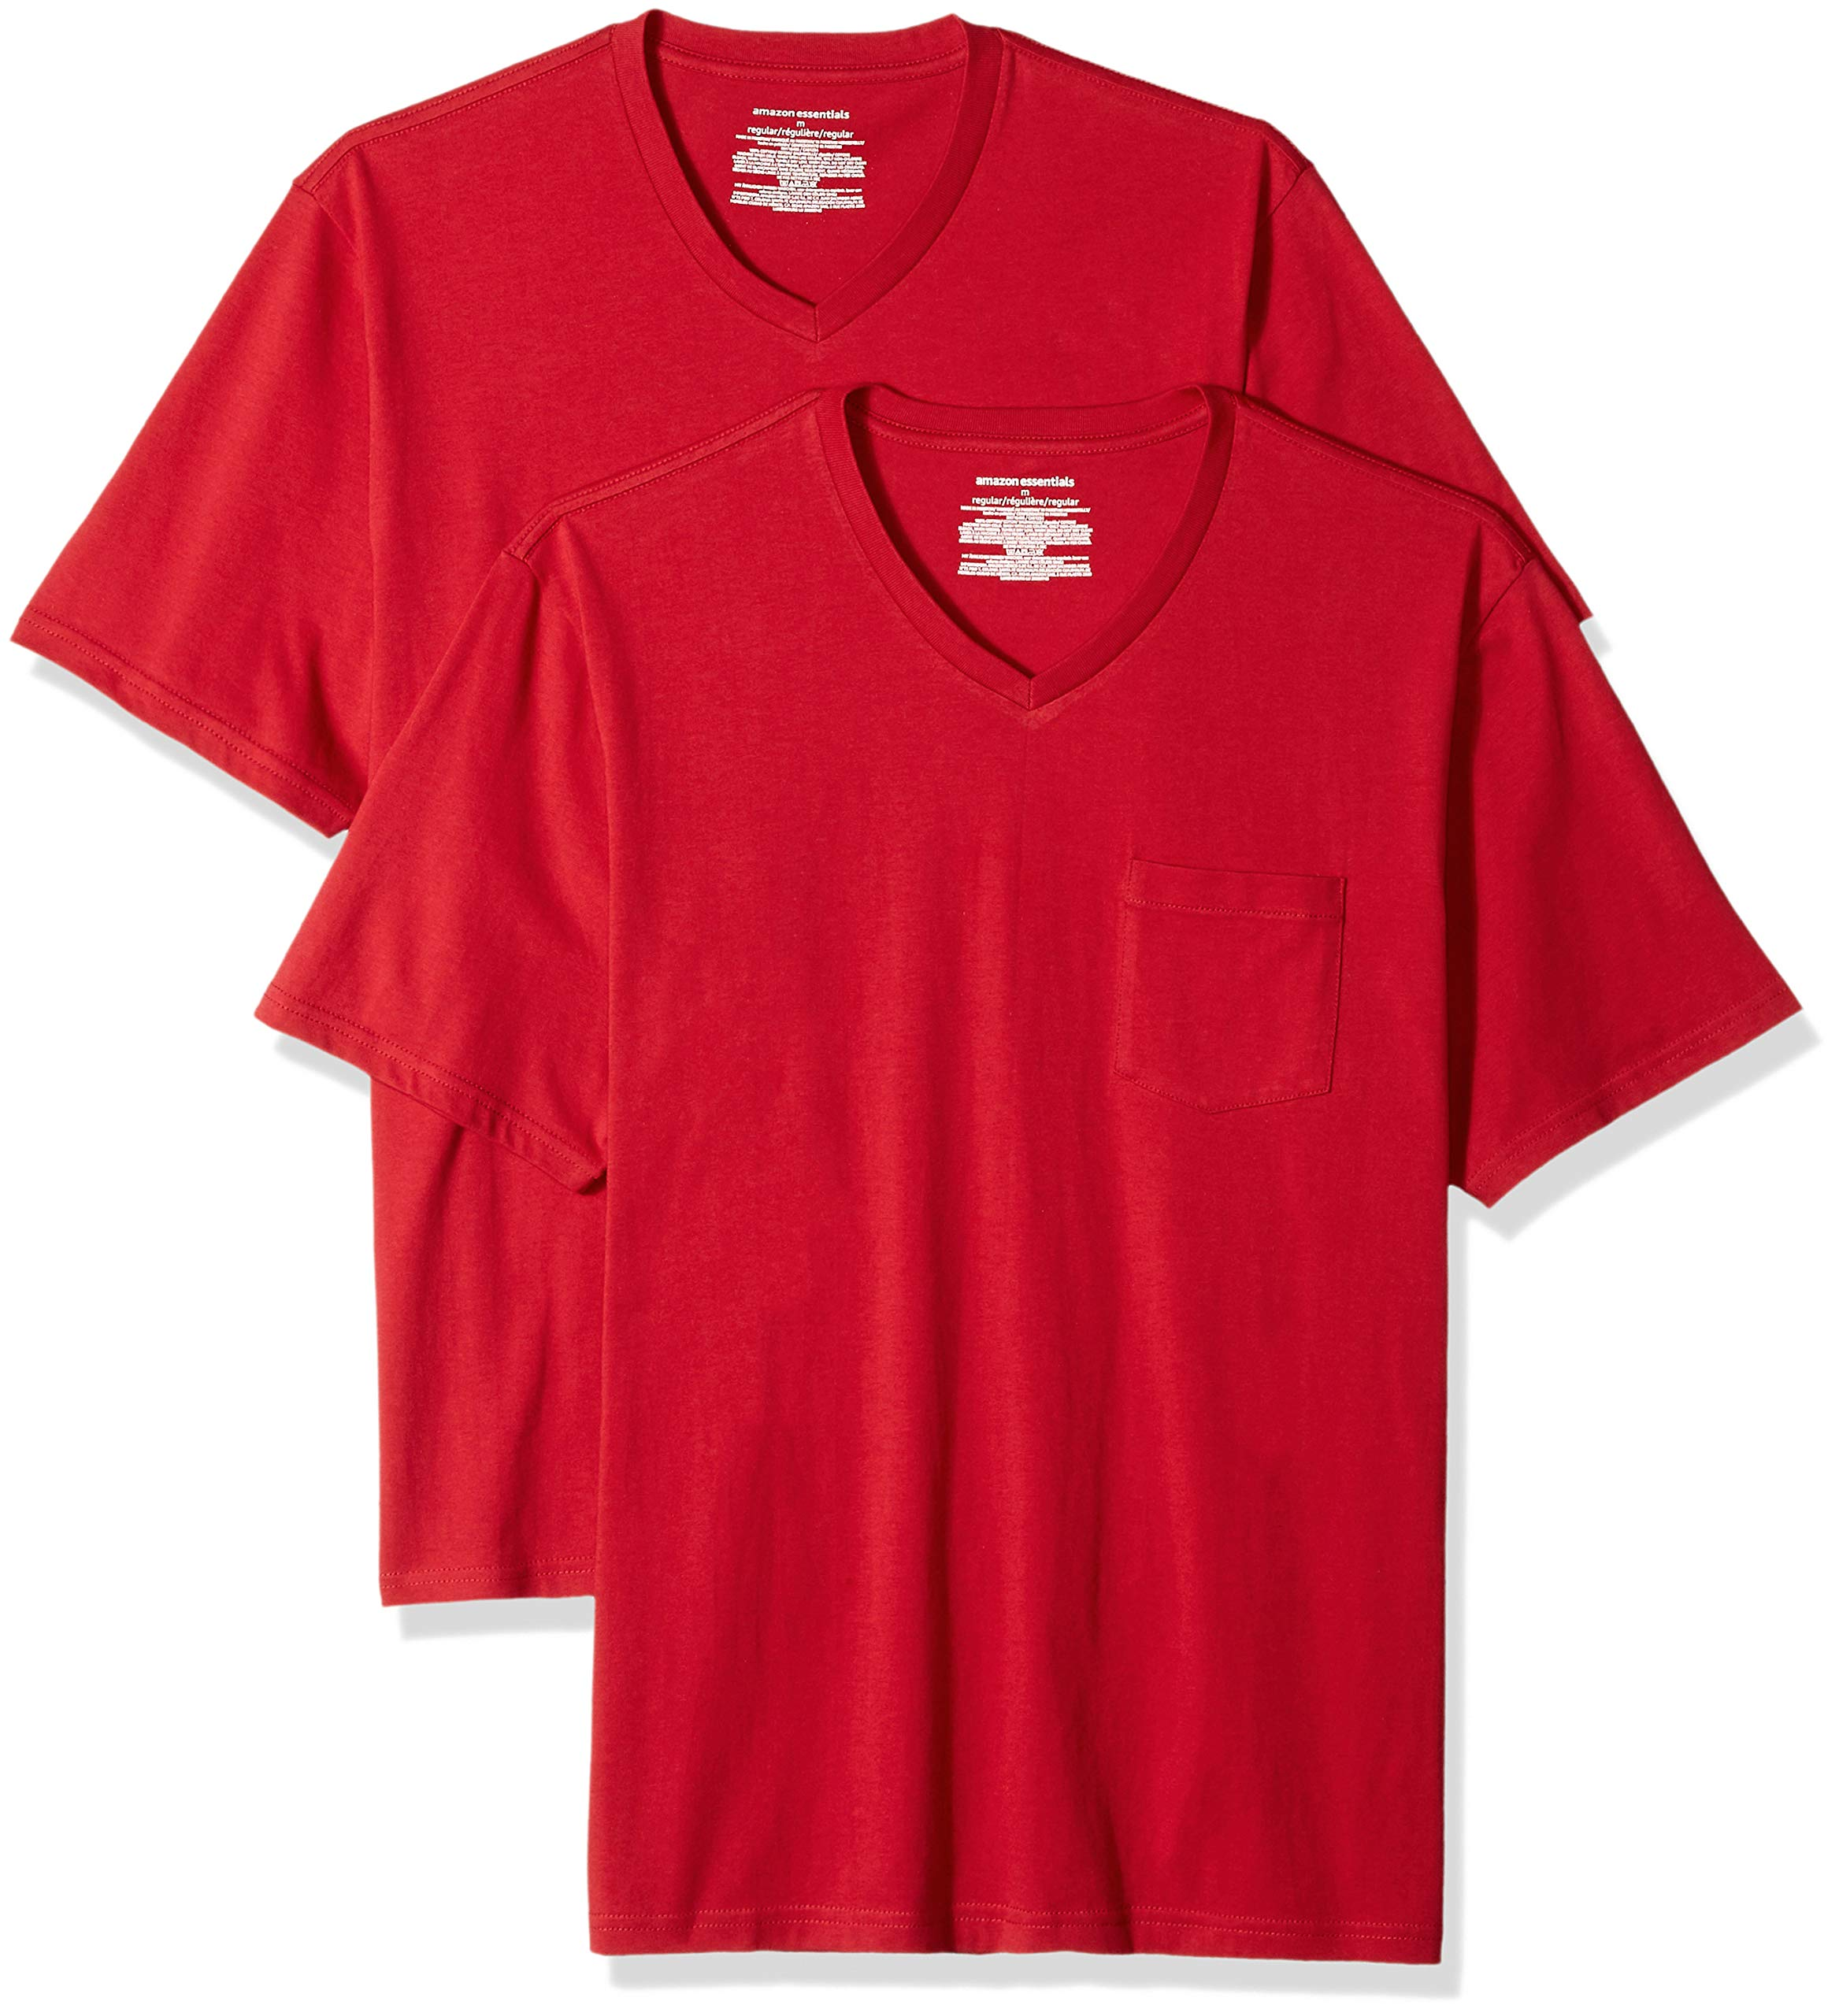 Amazon Essentials Men's 2-Pack Loose-fit V-Neck Pocket T-Shirt, red, X-Large by Amazon Essentials